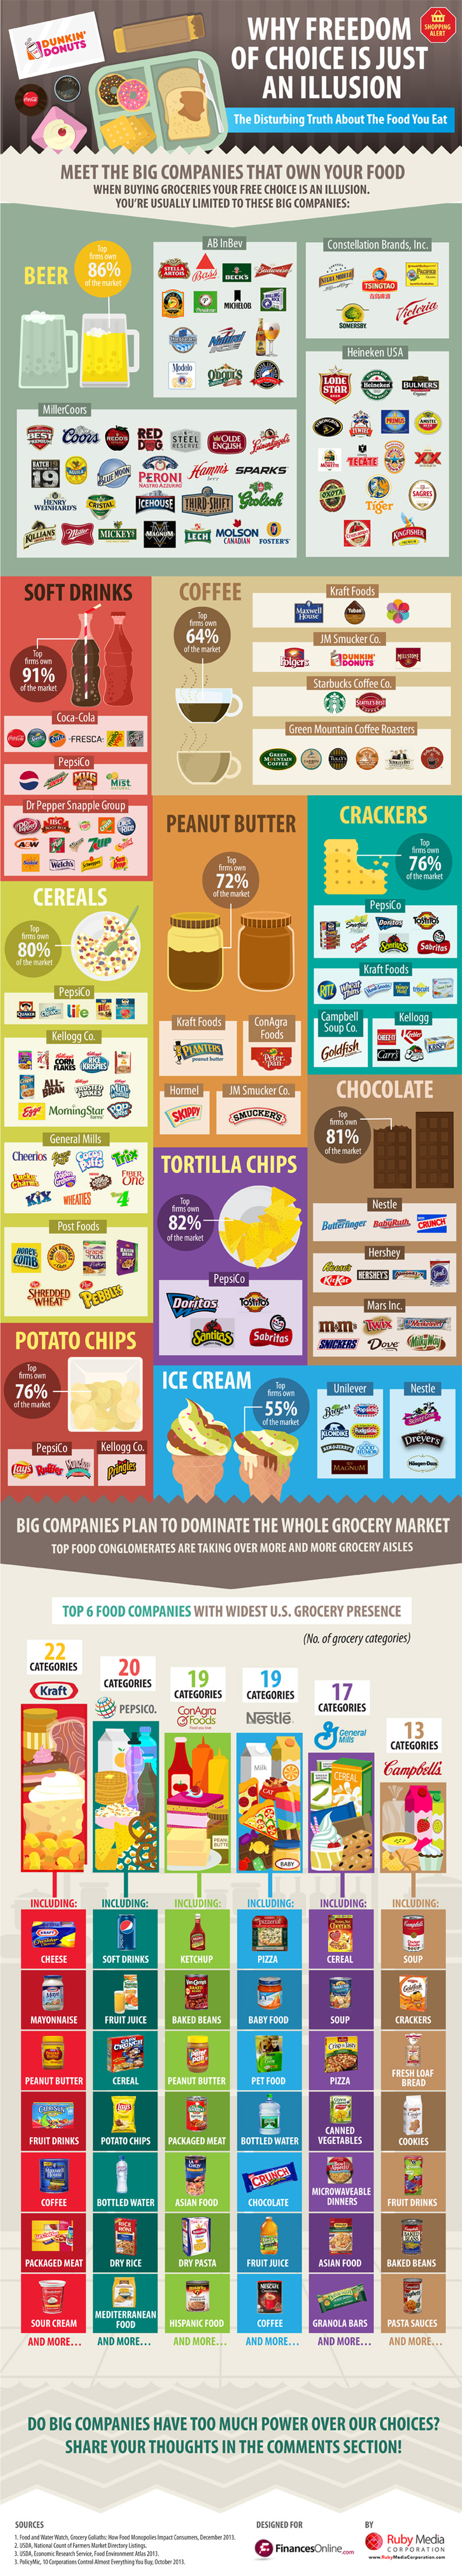 These food companies own your choices